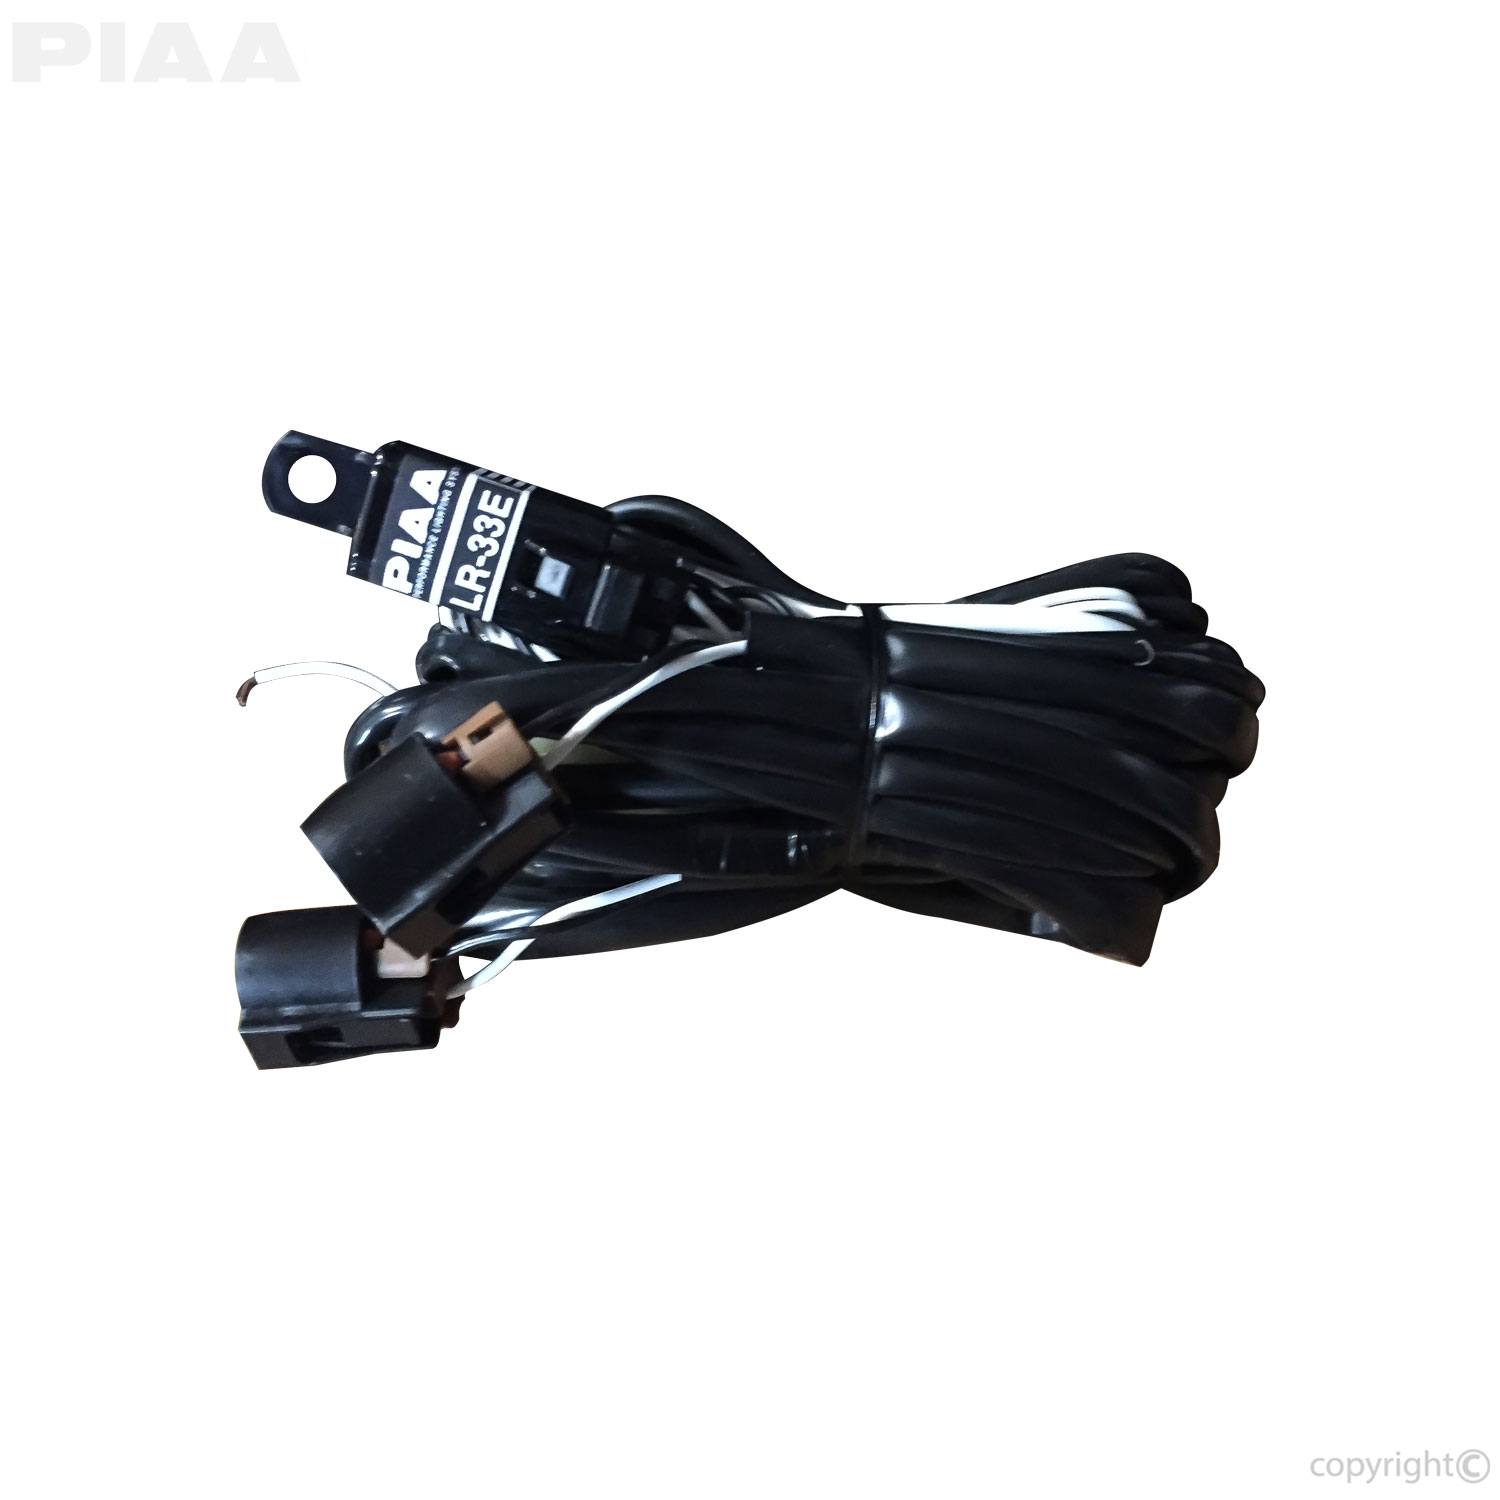 piaa piaa wiring harness for 410 series driving light kit for rh piaa com piaa 1100x wiring harness piaa 520 wiring harness